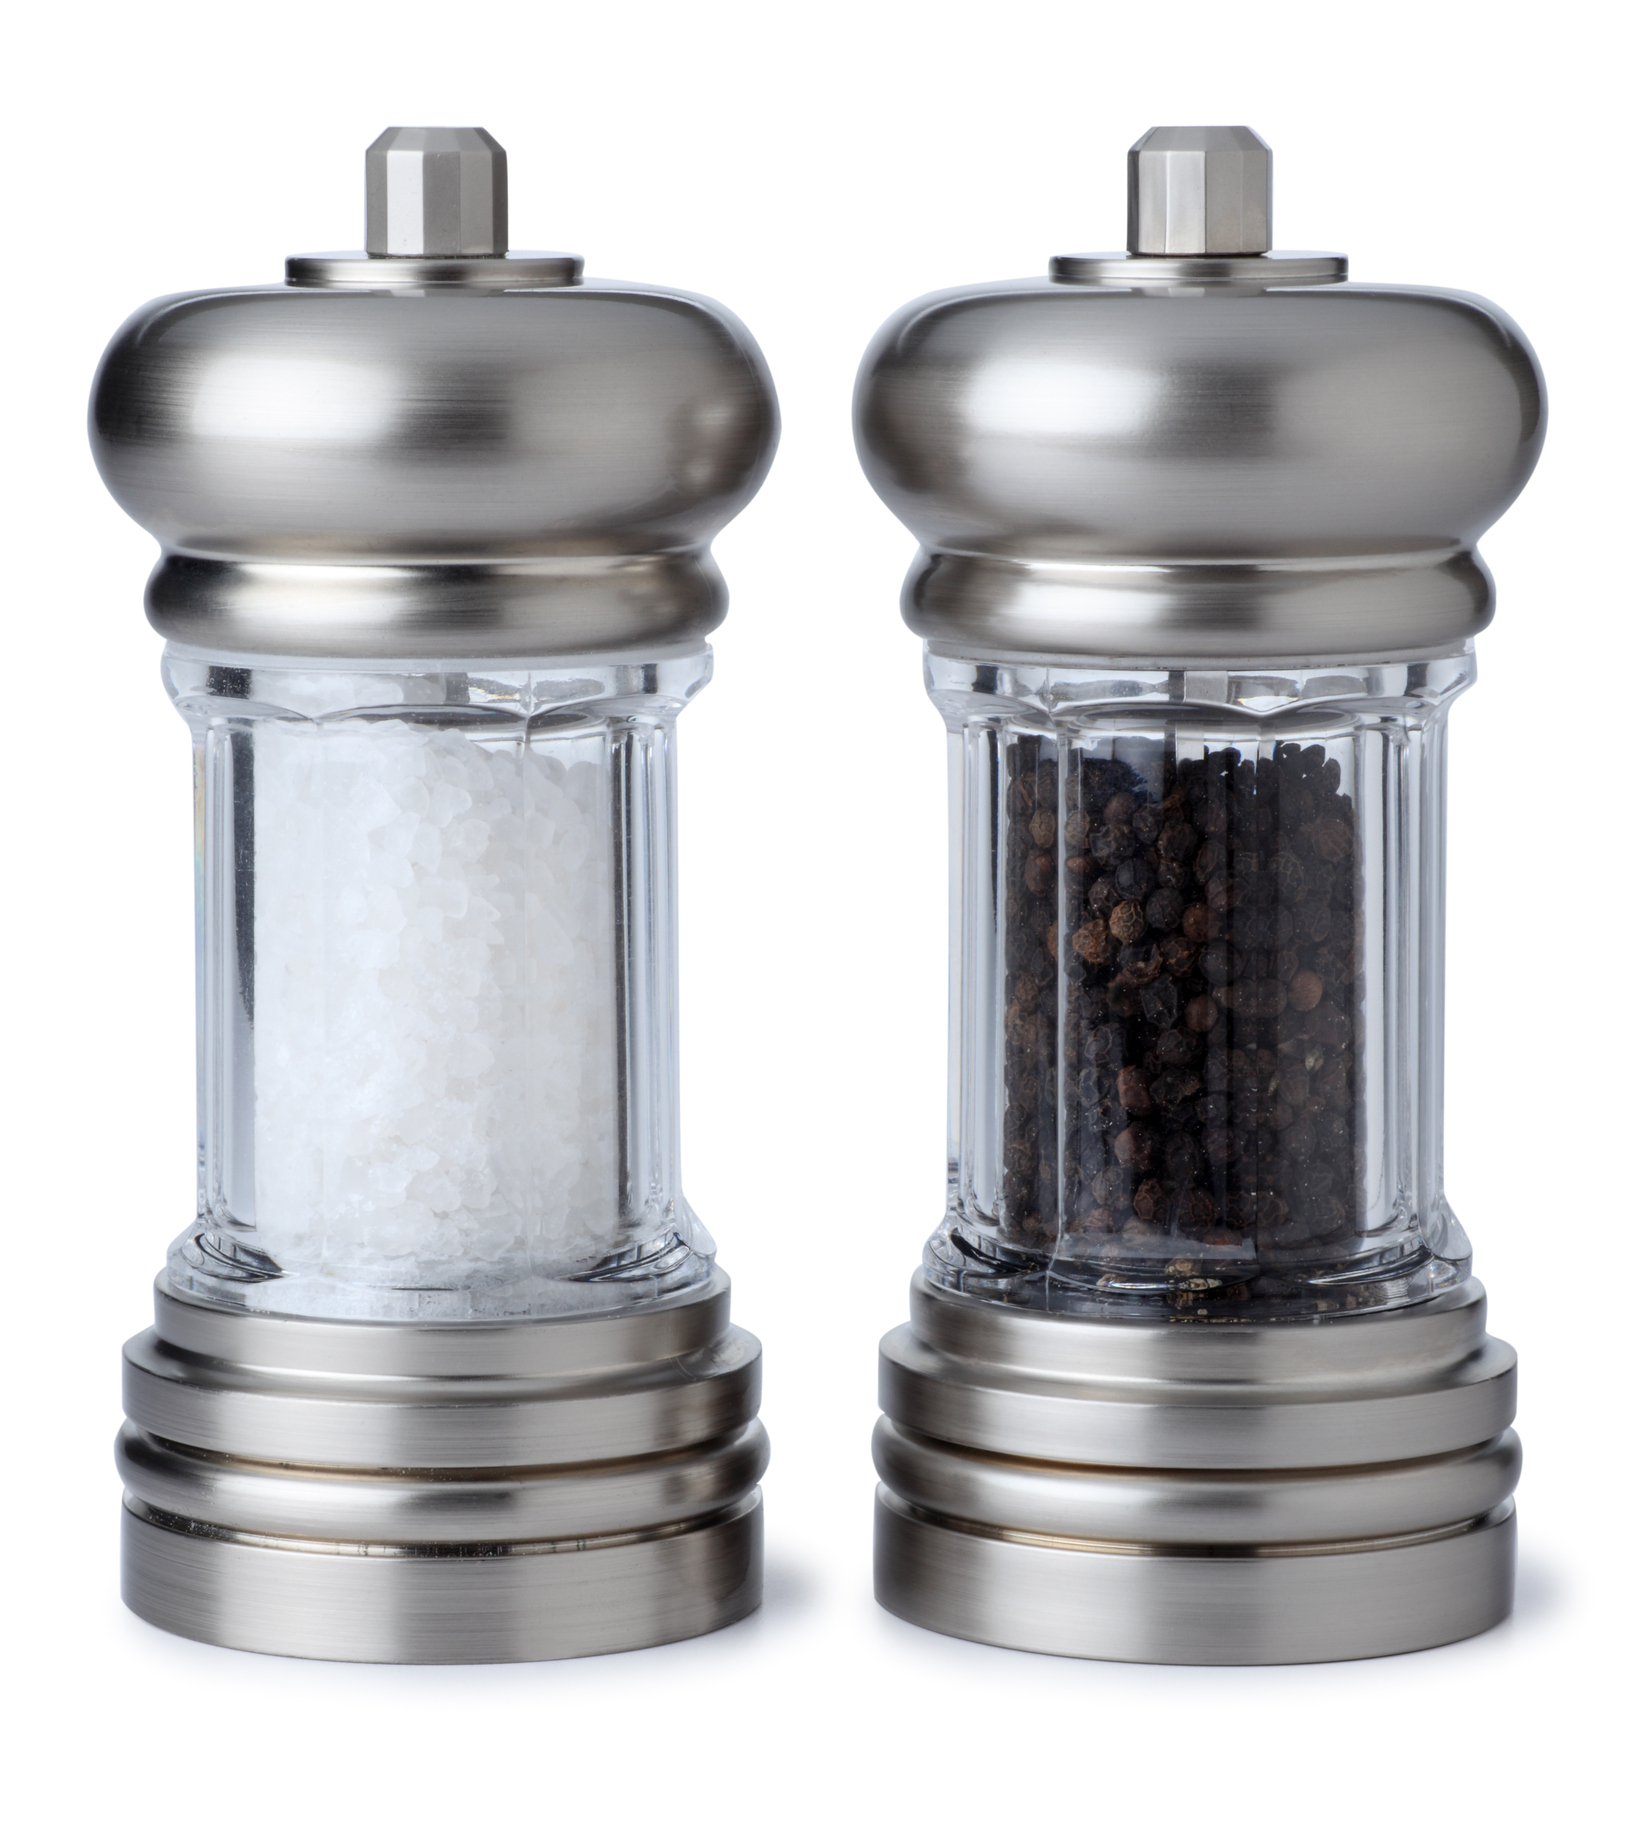 Always keep salt and pepper in your desk drawer – you'll be surprised how it can transform your lunch. Photo: skodonnell / Getty Images